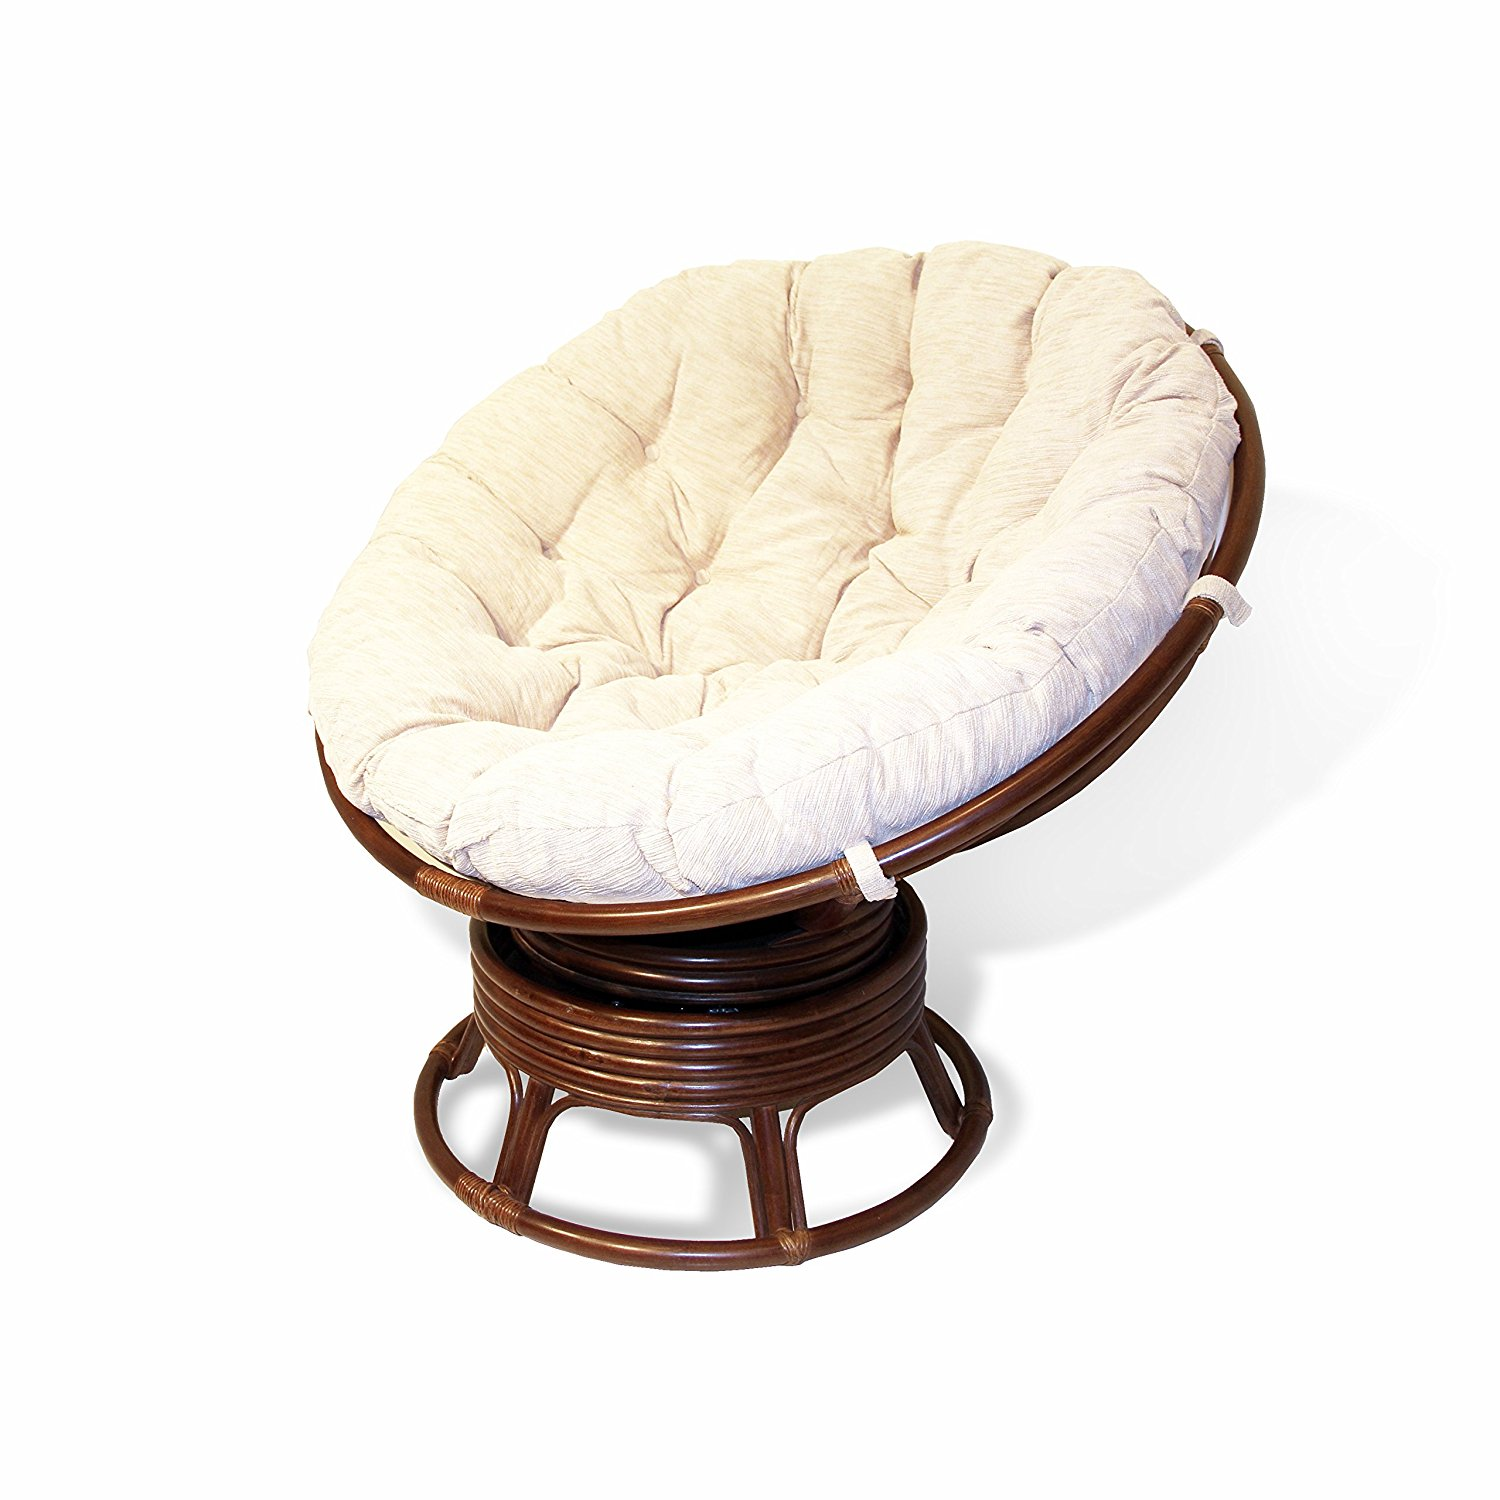 Surprising Papasan Swivel Chair Ibusinesslaw Wood Chair Design Ideas Ibusinesslaworg